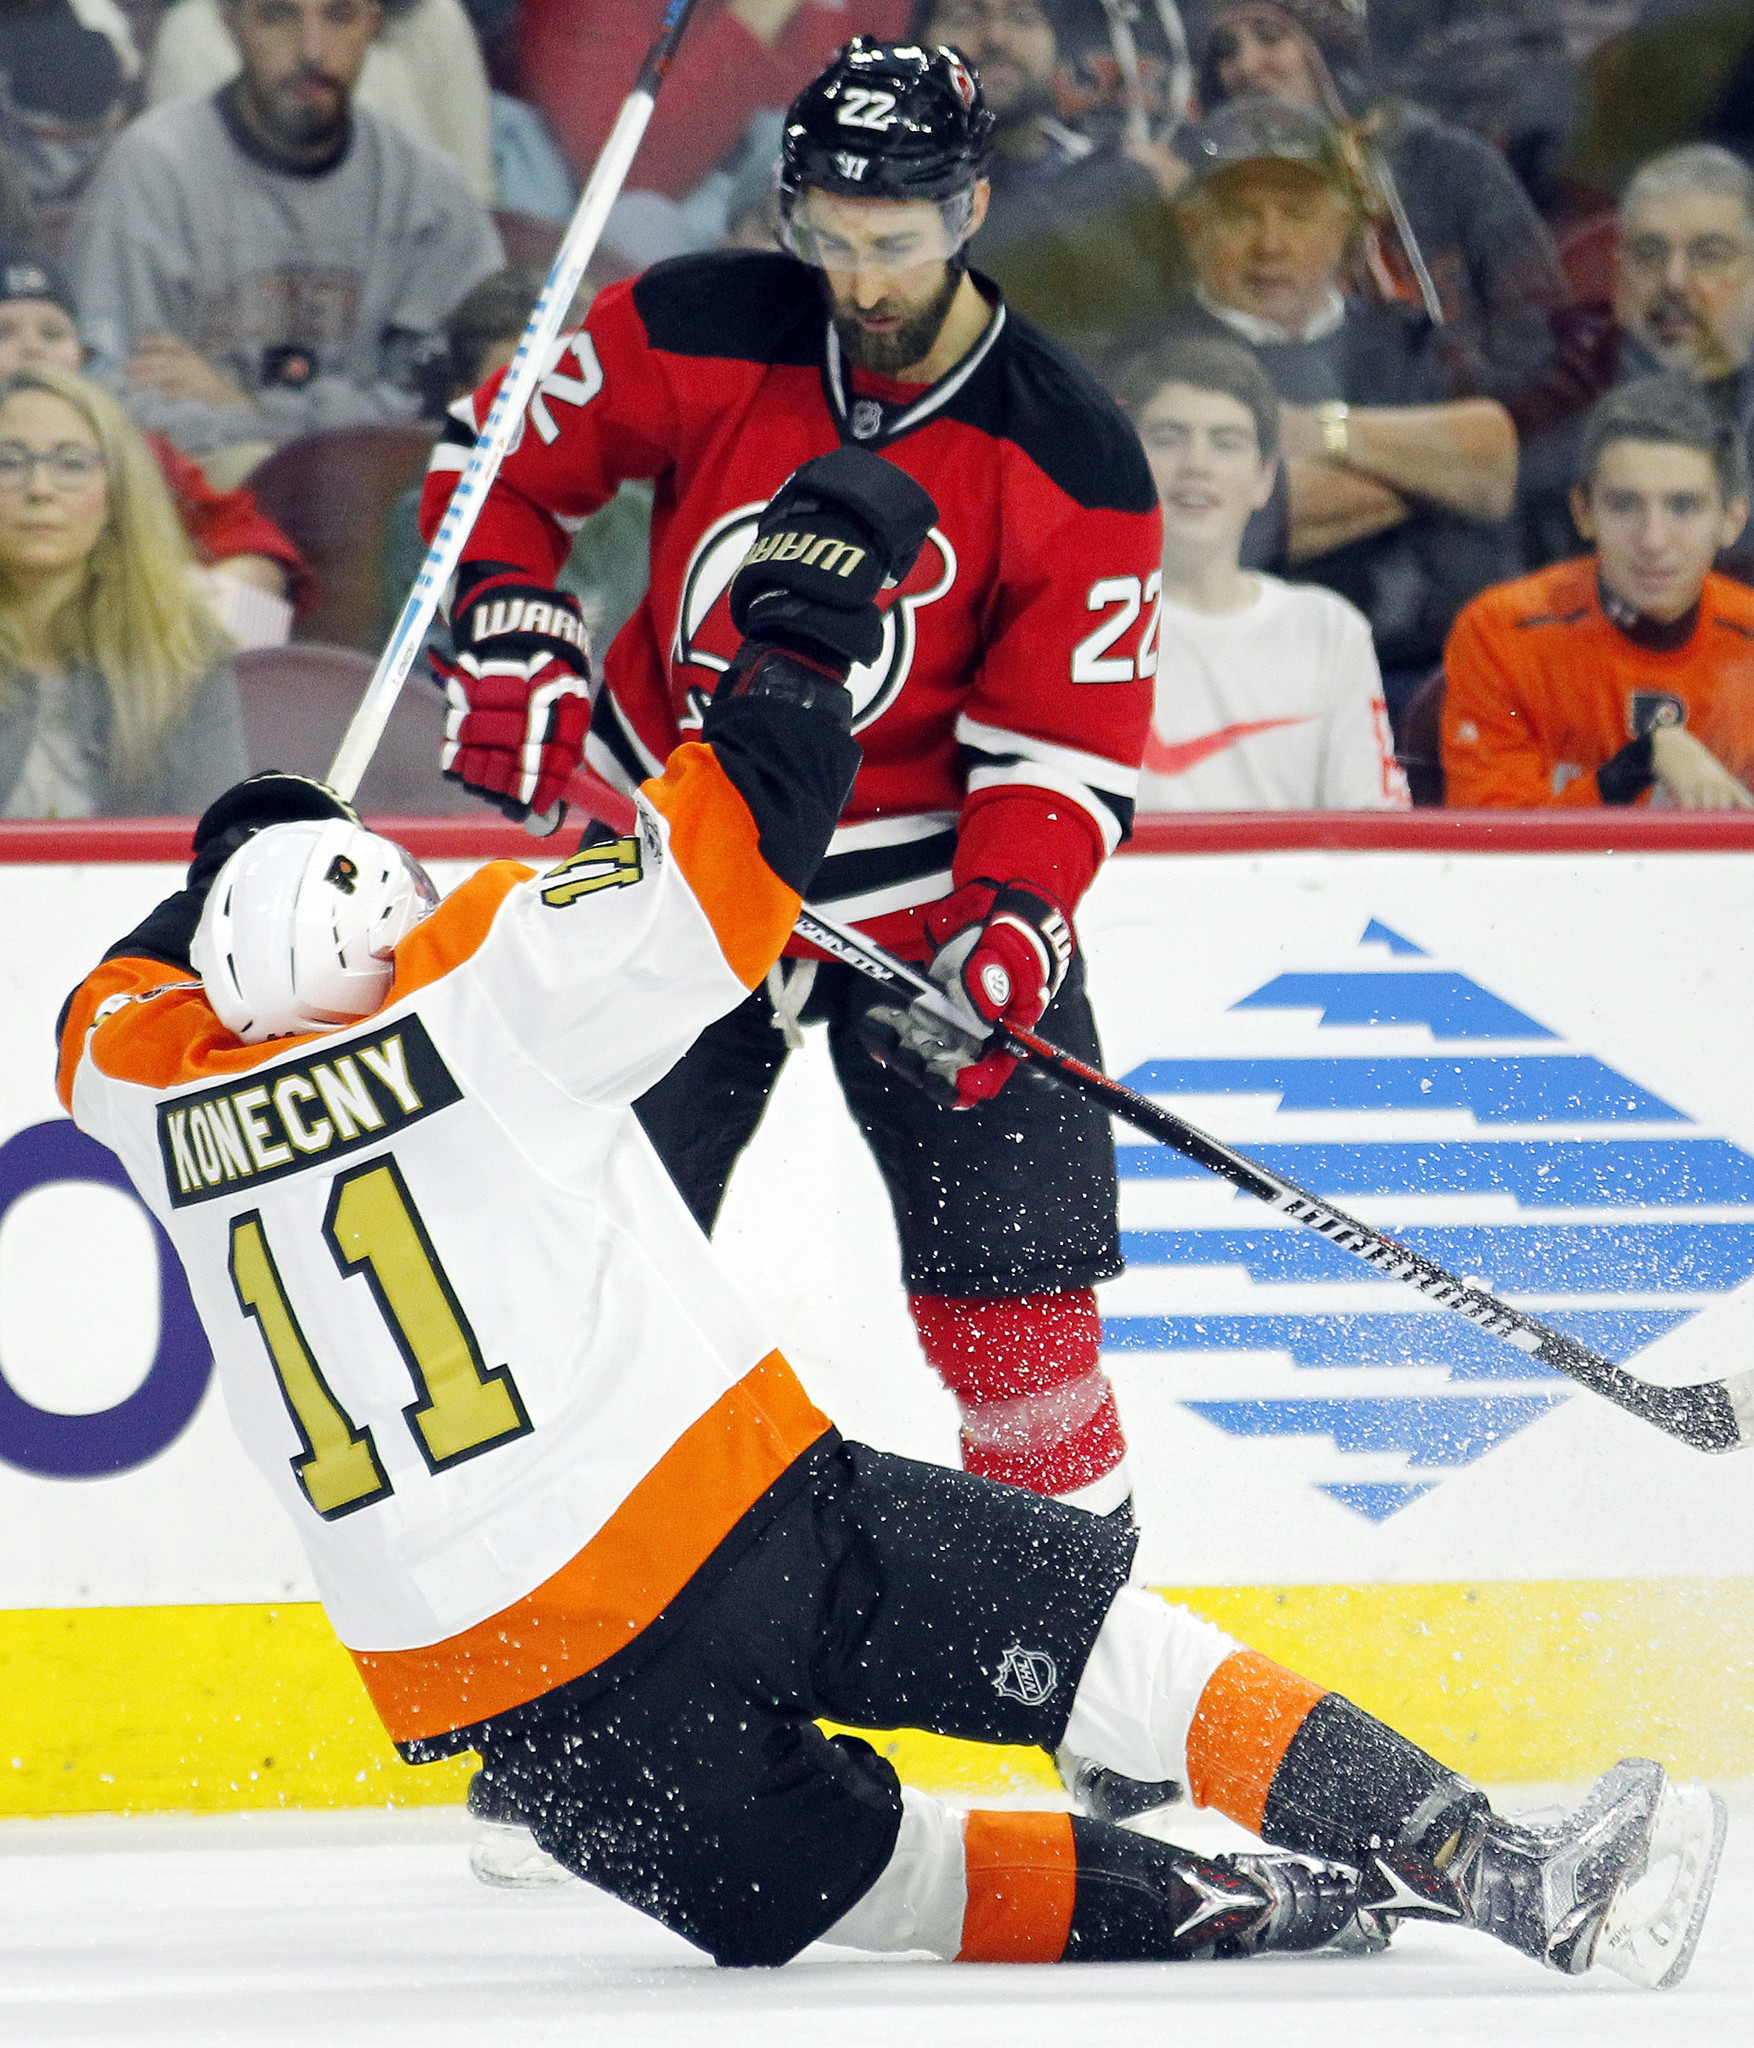 new product 8fc09 1ad0d Wood scores twice to help Devils beat struggling Flyers 4-1 ...